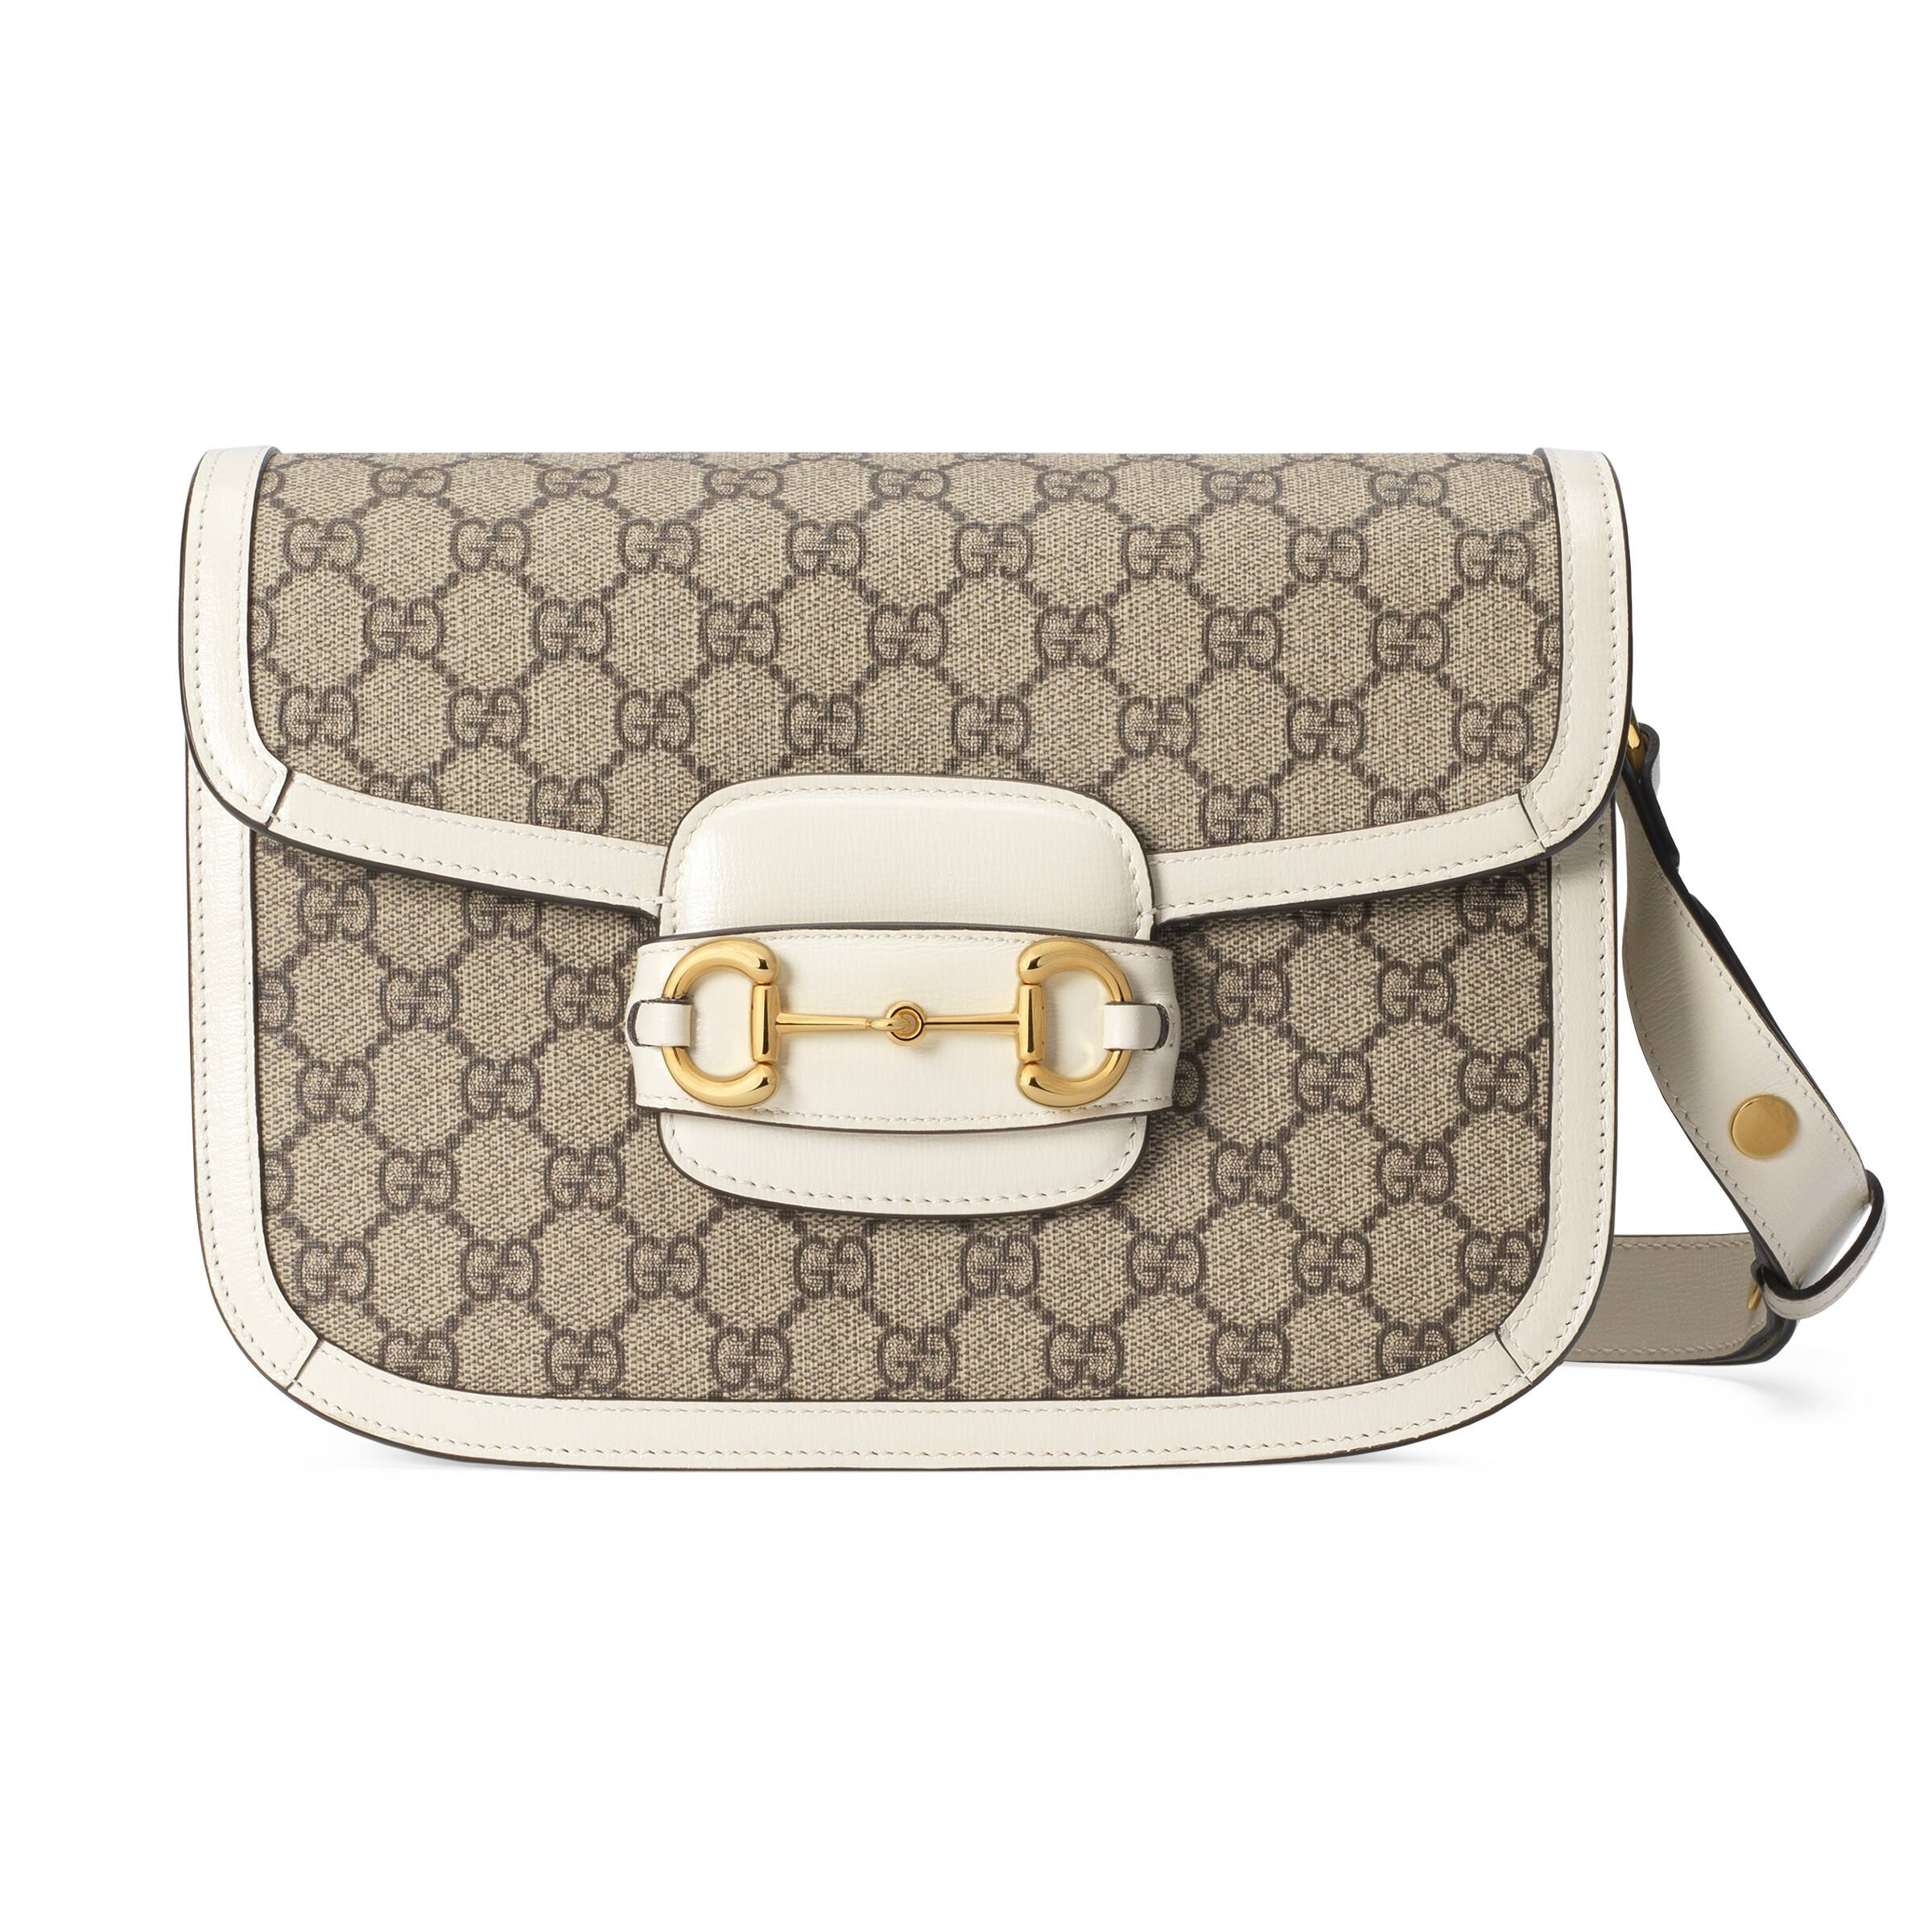 Gucci Horsebit 1955 small shoulder bag